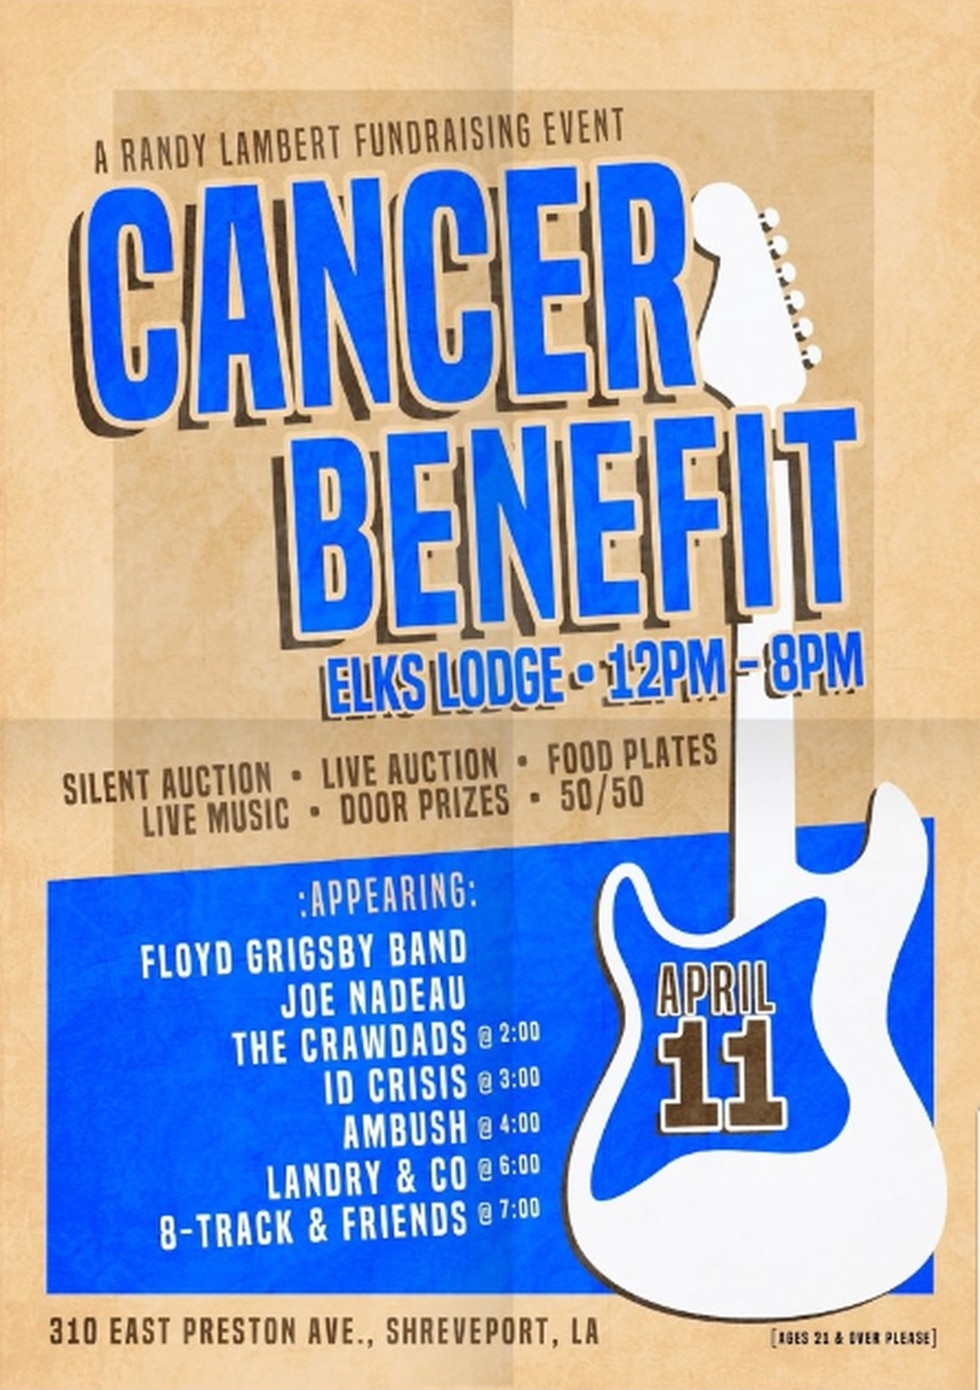 A benefit concert event is planned for April 11, 2021 at the Elks Lodge in Shreveport to help...